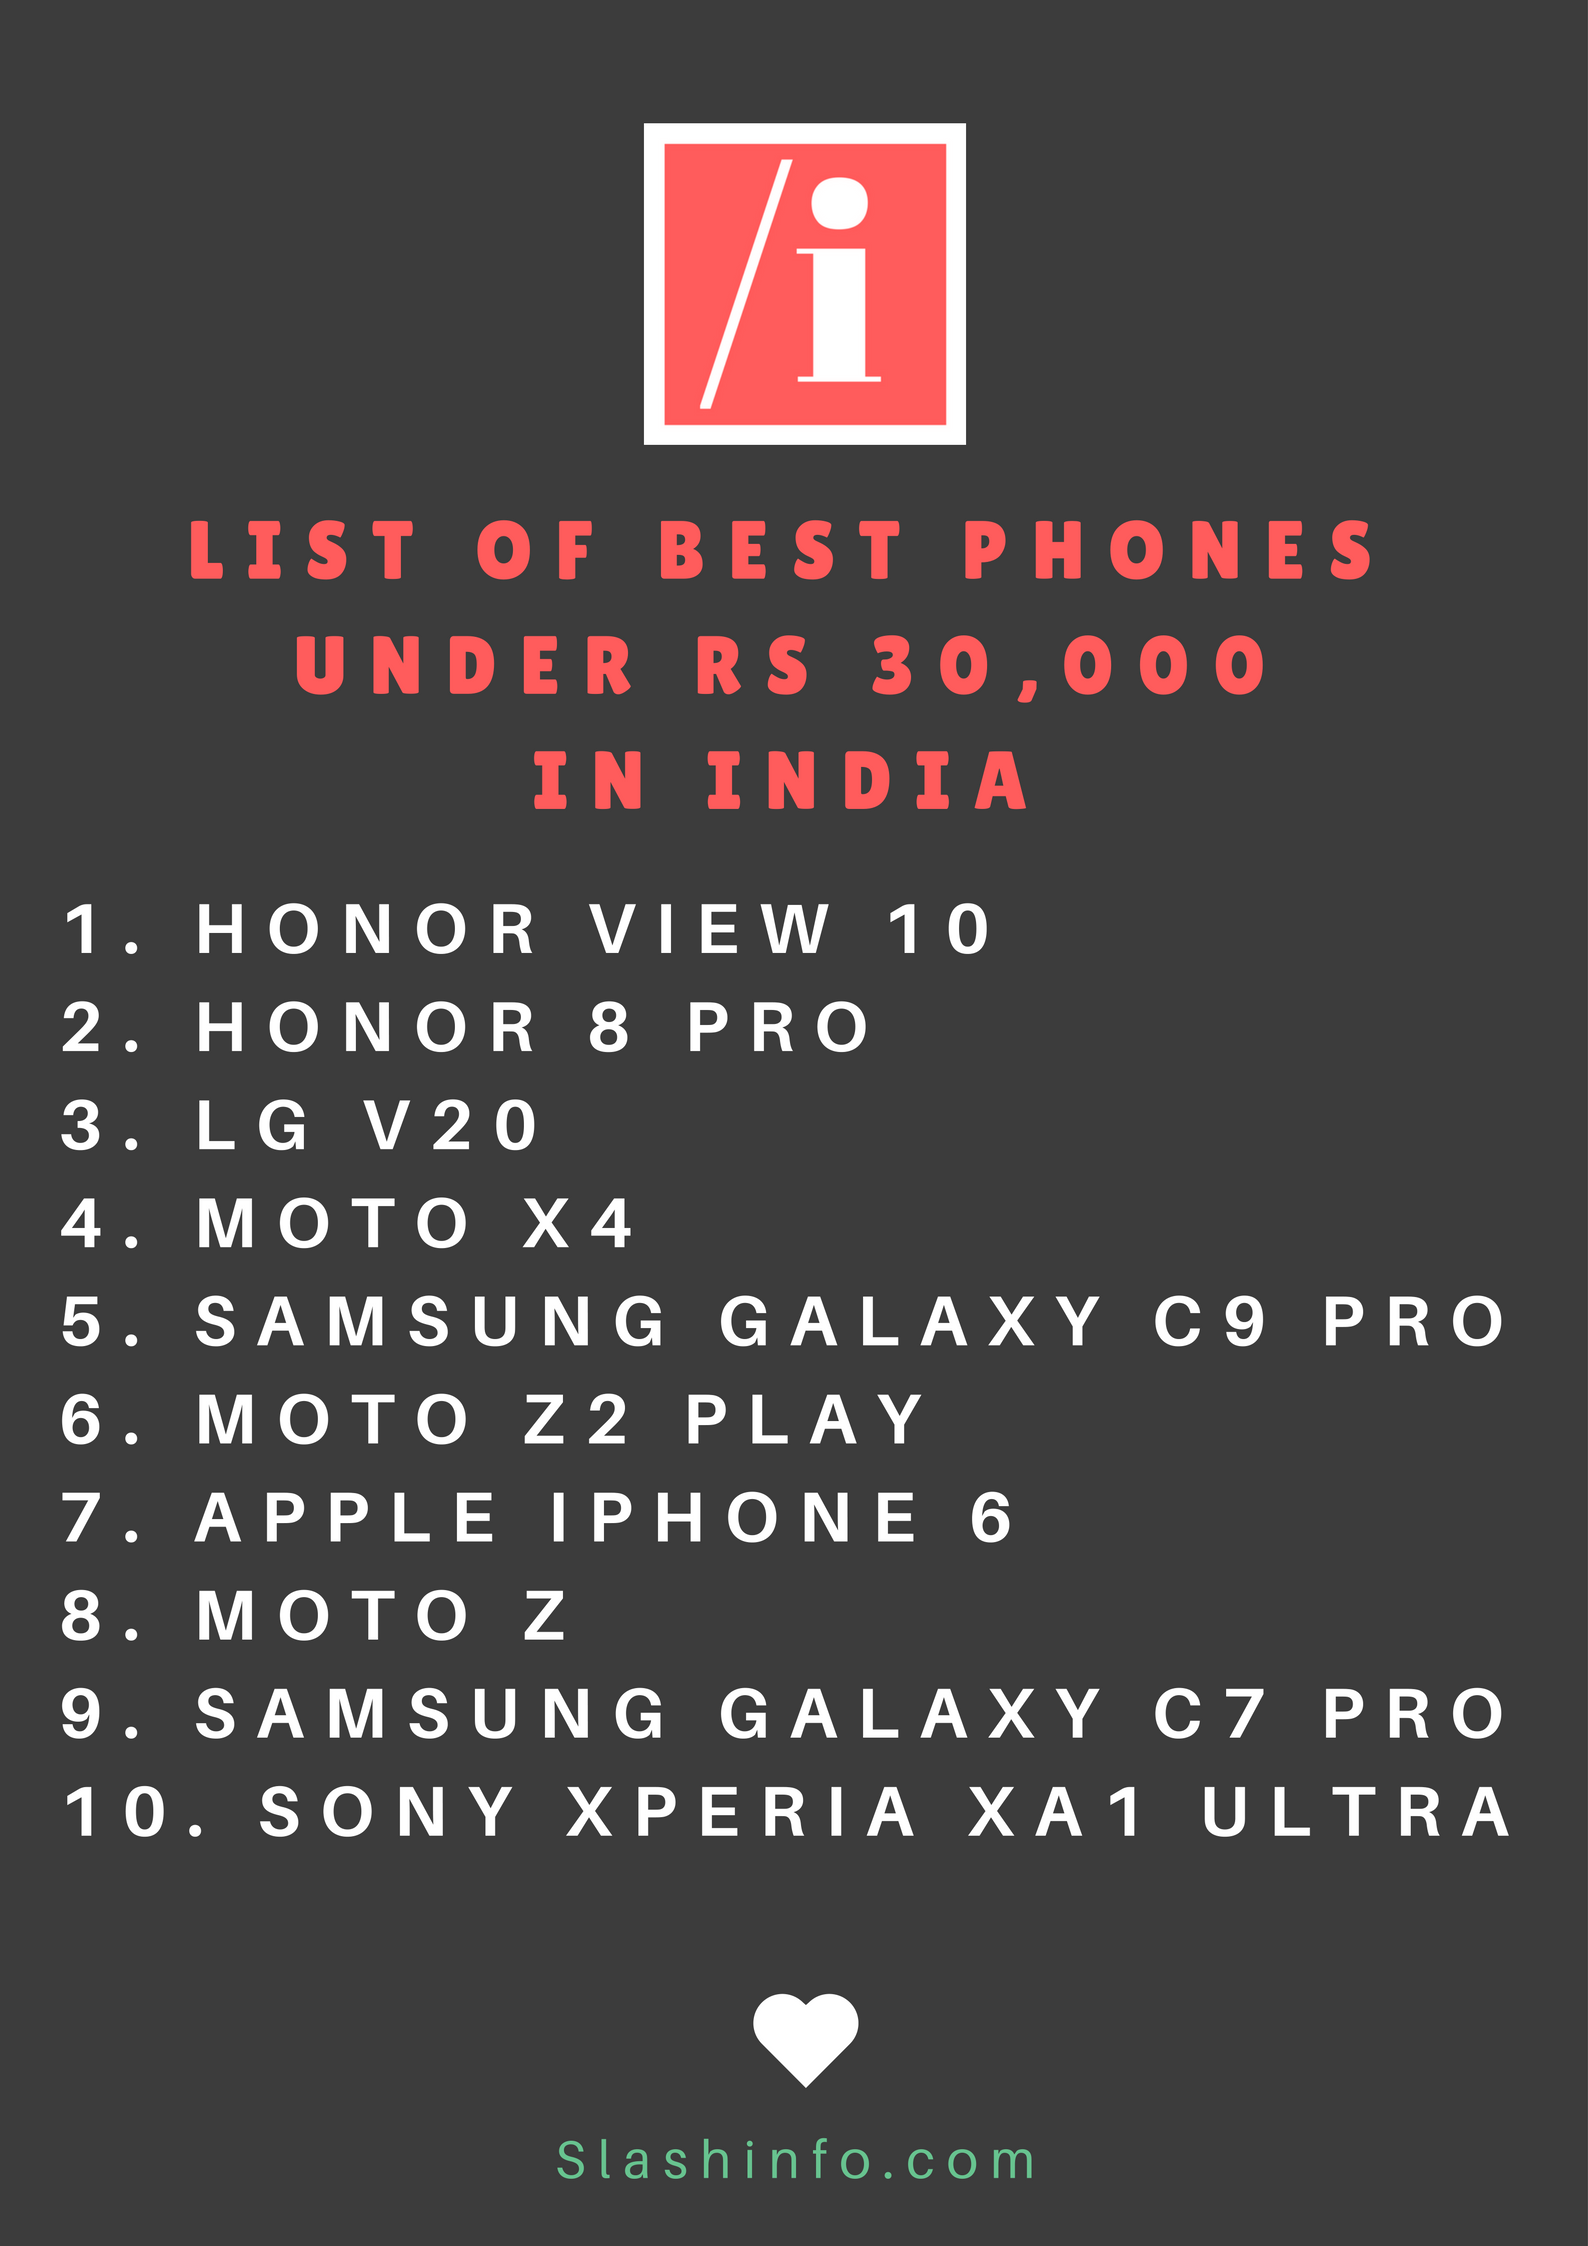 List Of Best Smartphones Under 30,000 in India